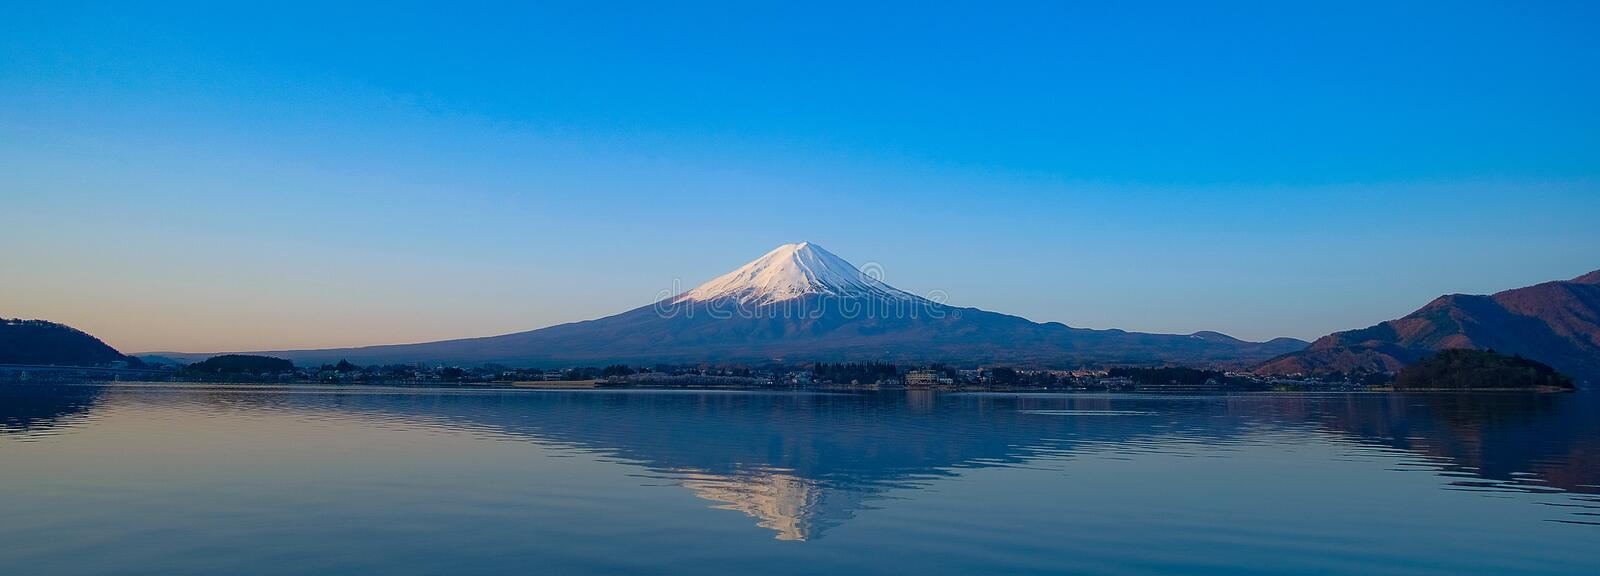 Panorama Reflection of Fuji mountain with snow capped in the morning Sunrise at Lake kawaguchiko, Yamanashi, Japan royalty free stock images